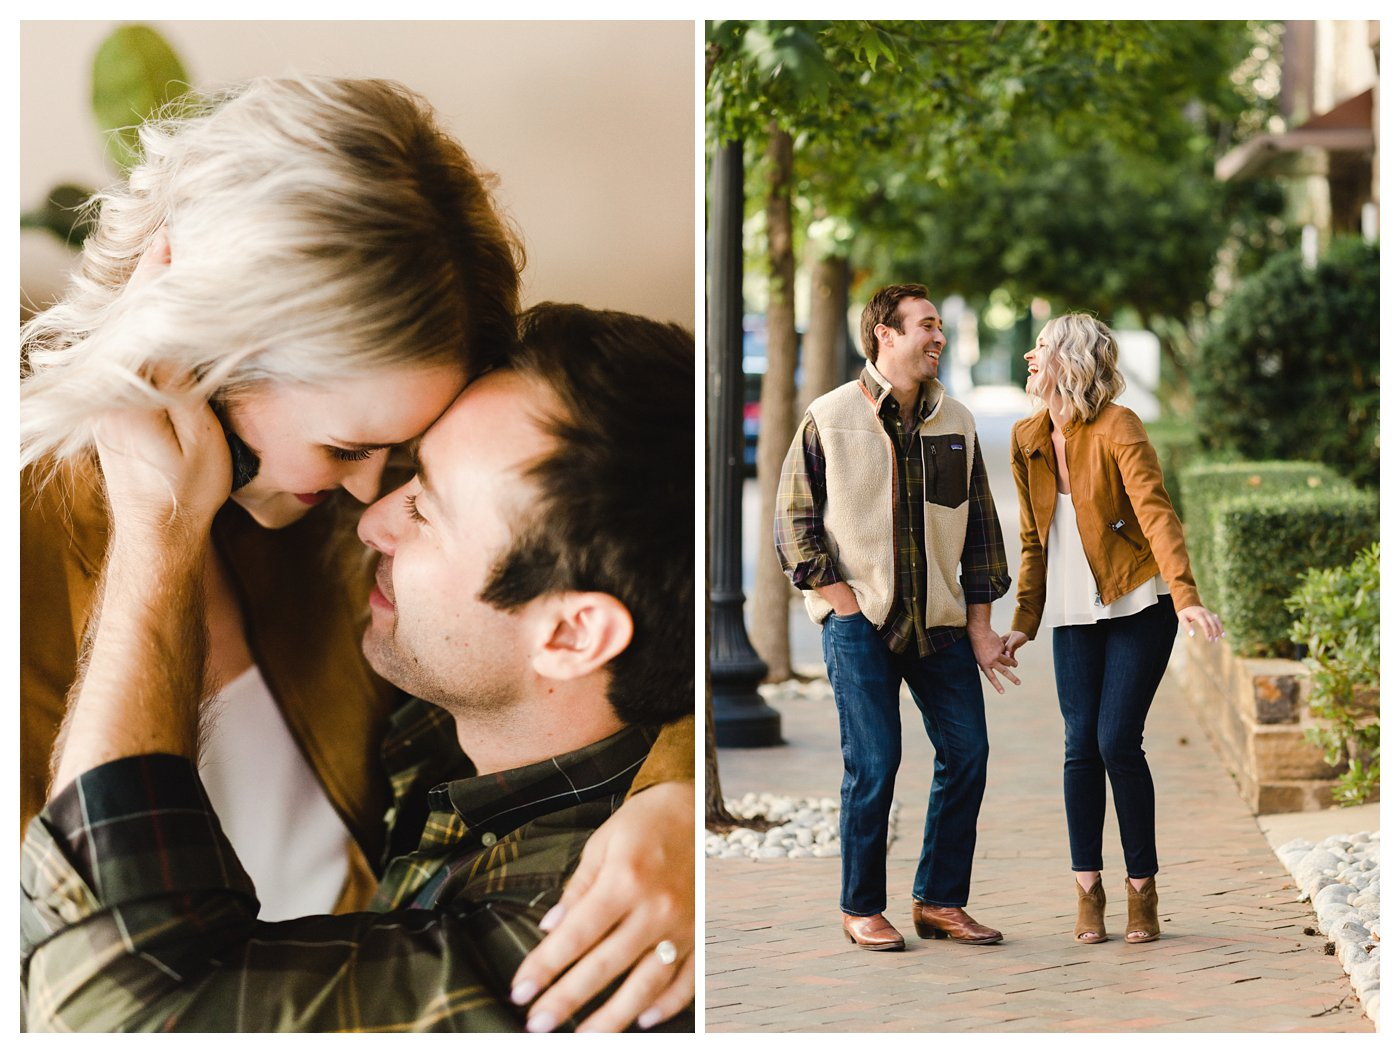 Dallas, Texas Engagement Photography by Amanda and Grady